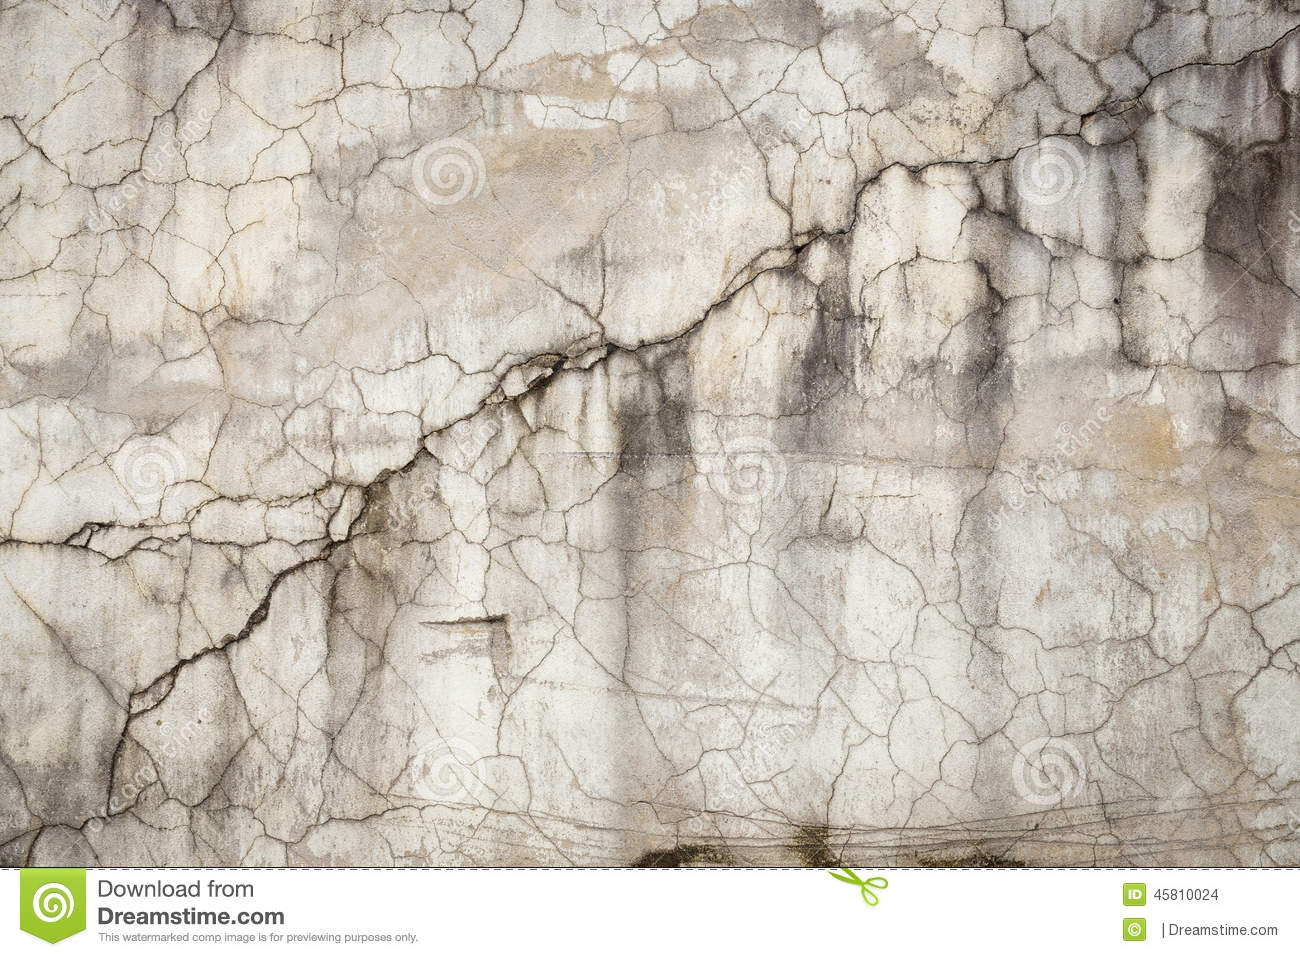 Cracked concrete wall texture background stock photo for Old concrete wall texture